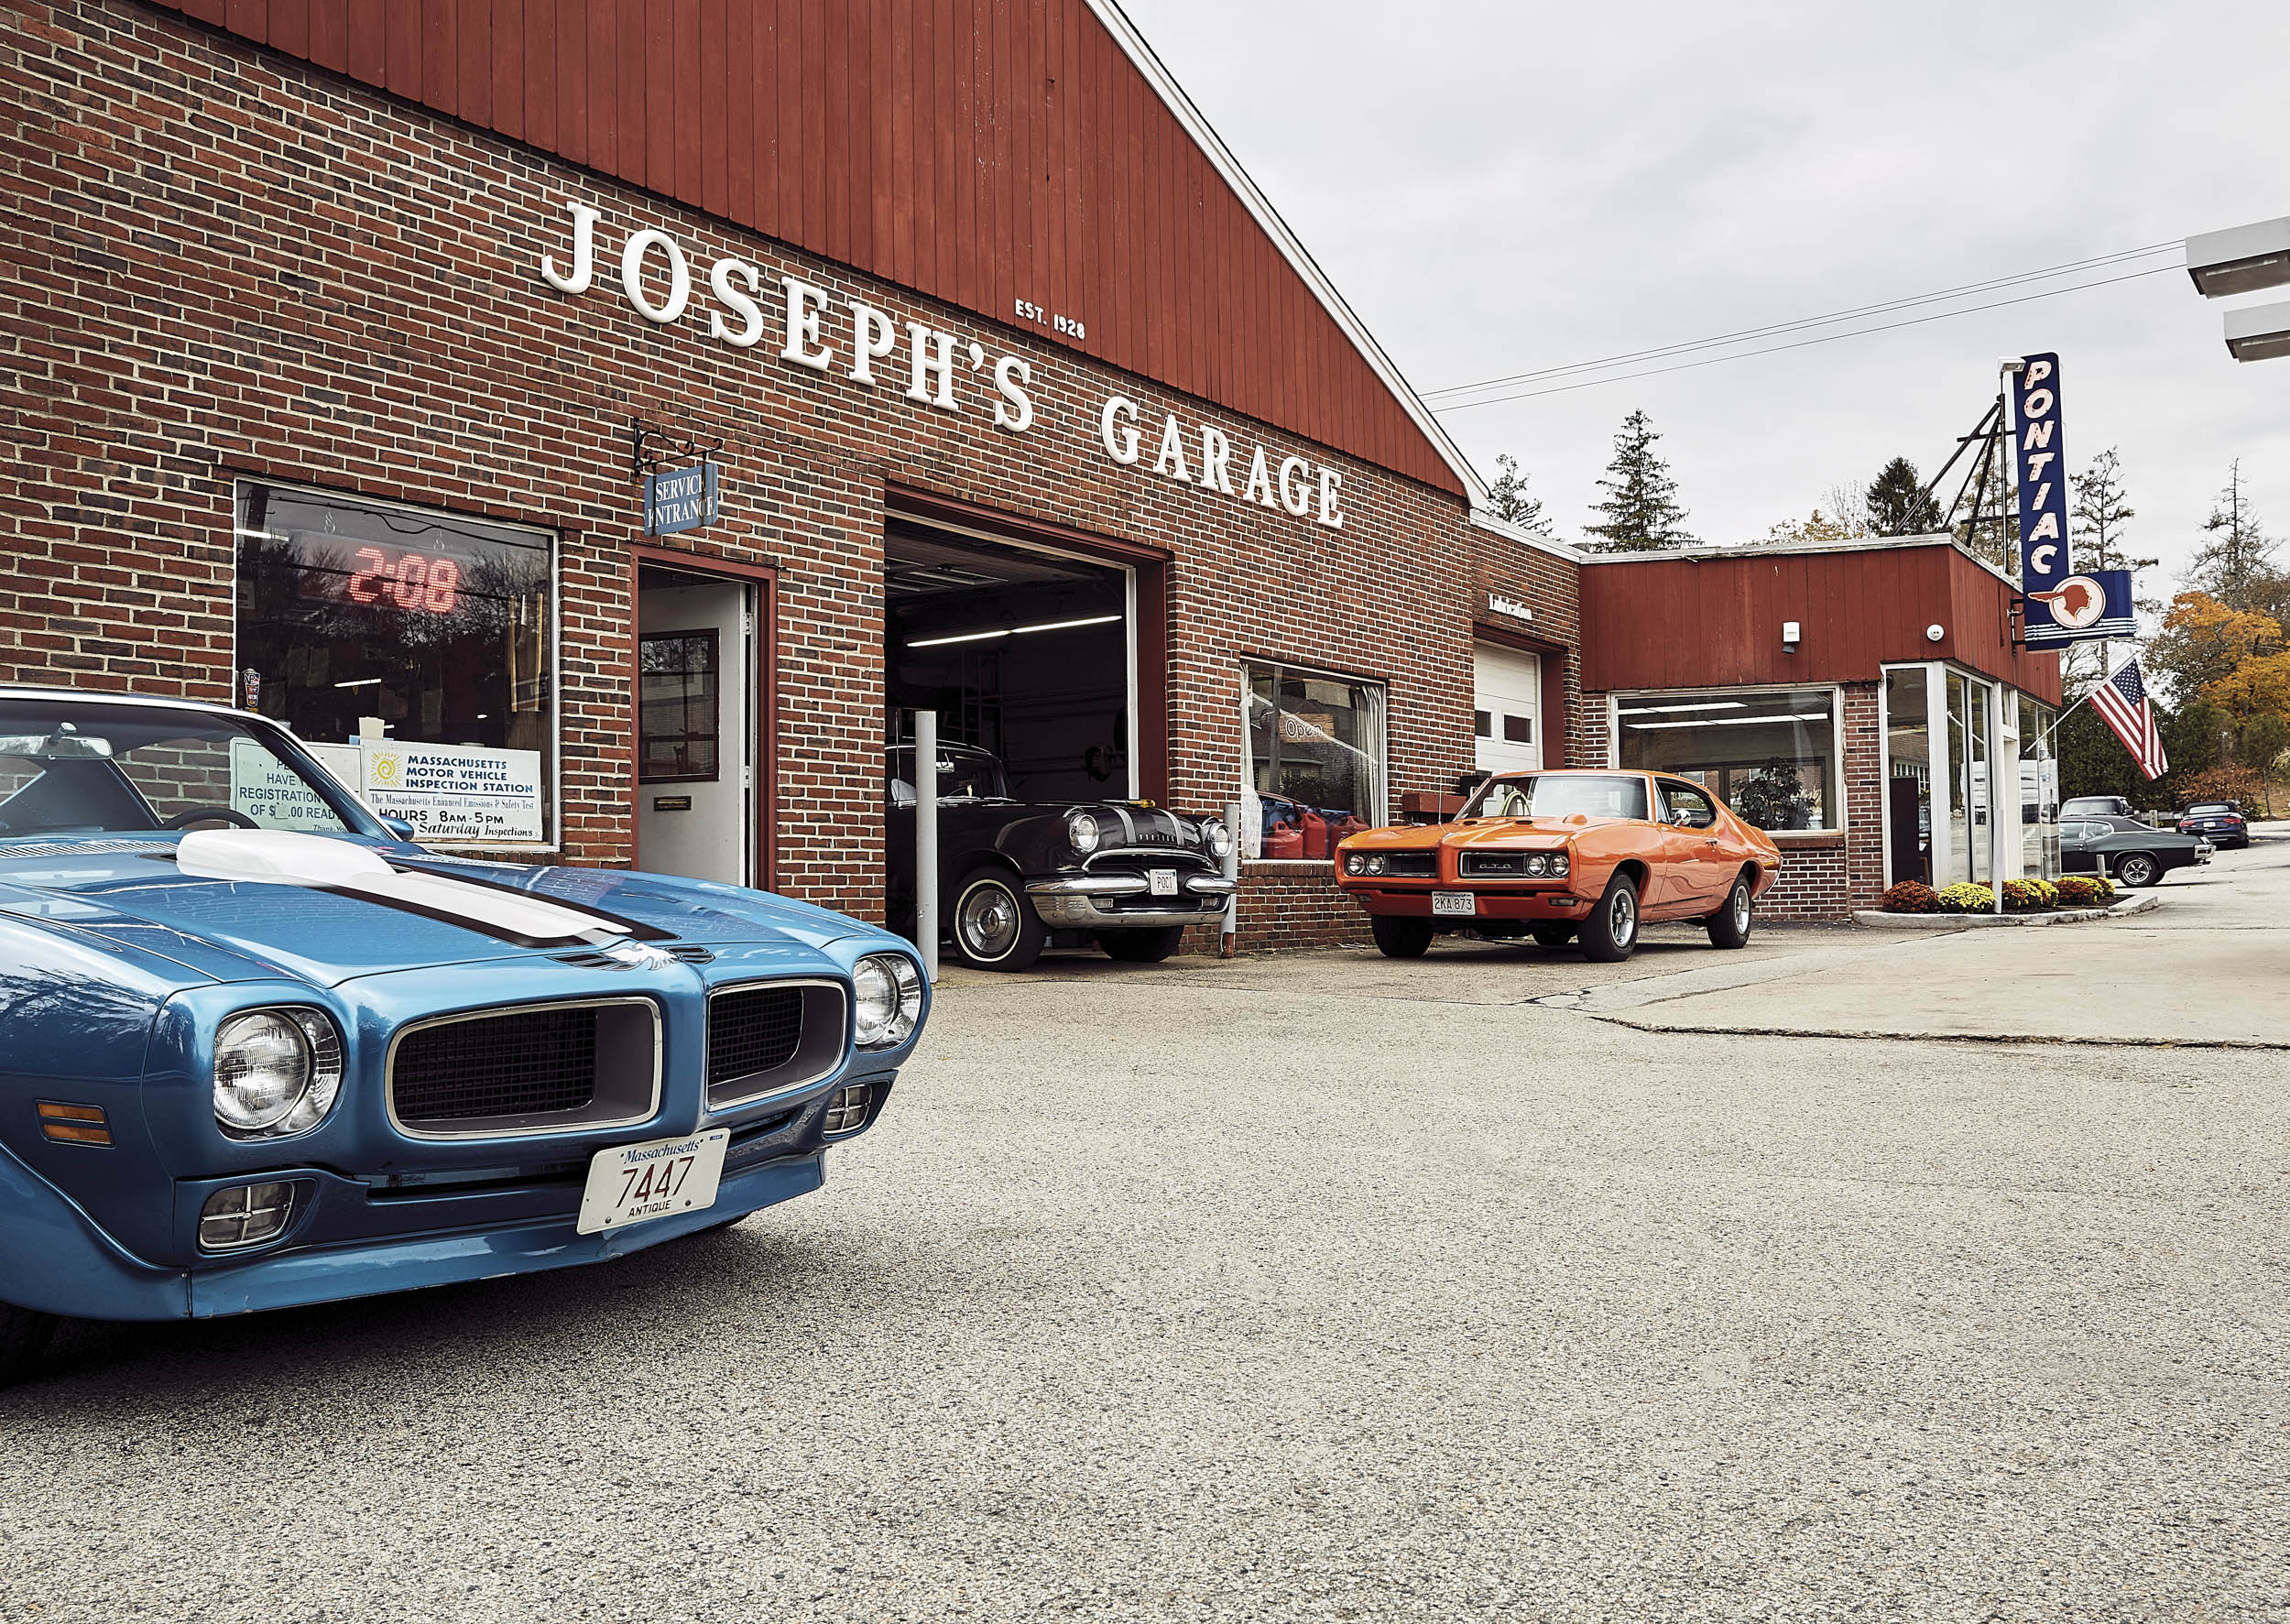 Not much has changed at Joseph's. The old Pontiac sign still reigns above the showroom, and old Pontiac cars are never far away.